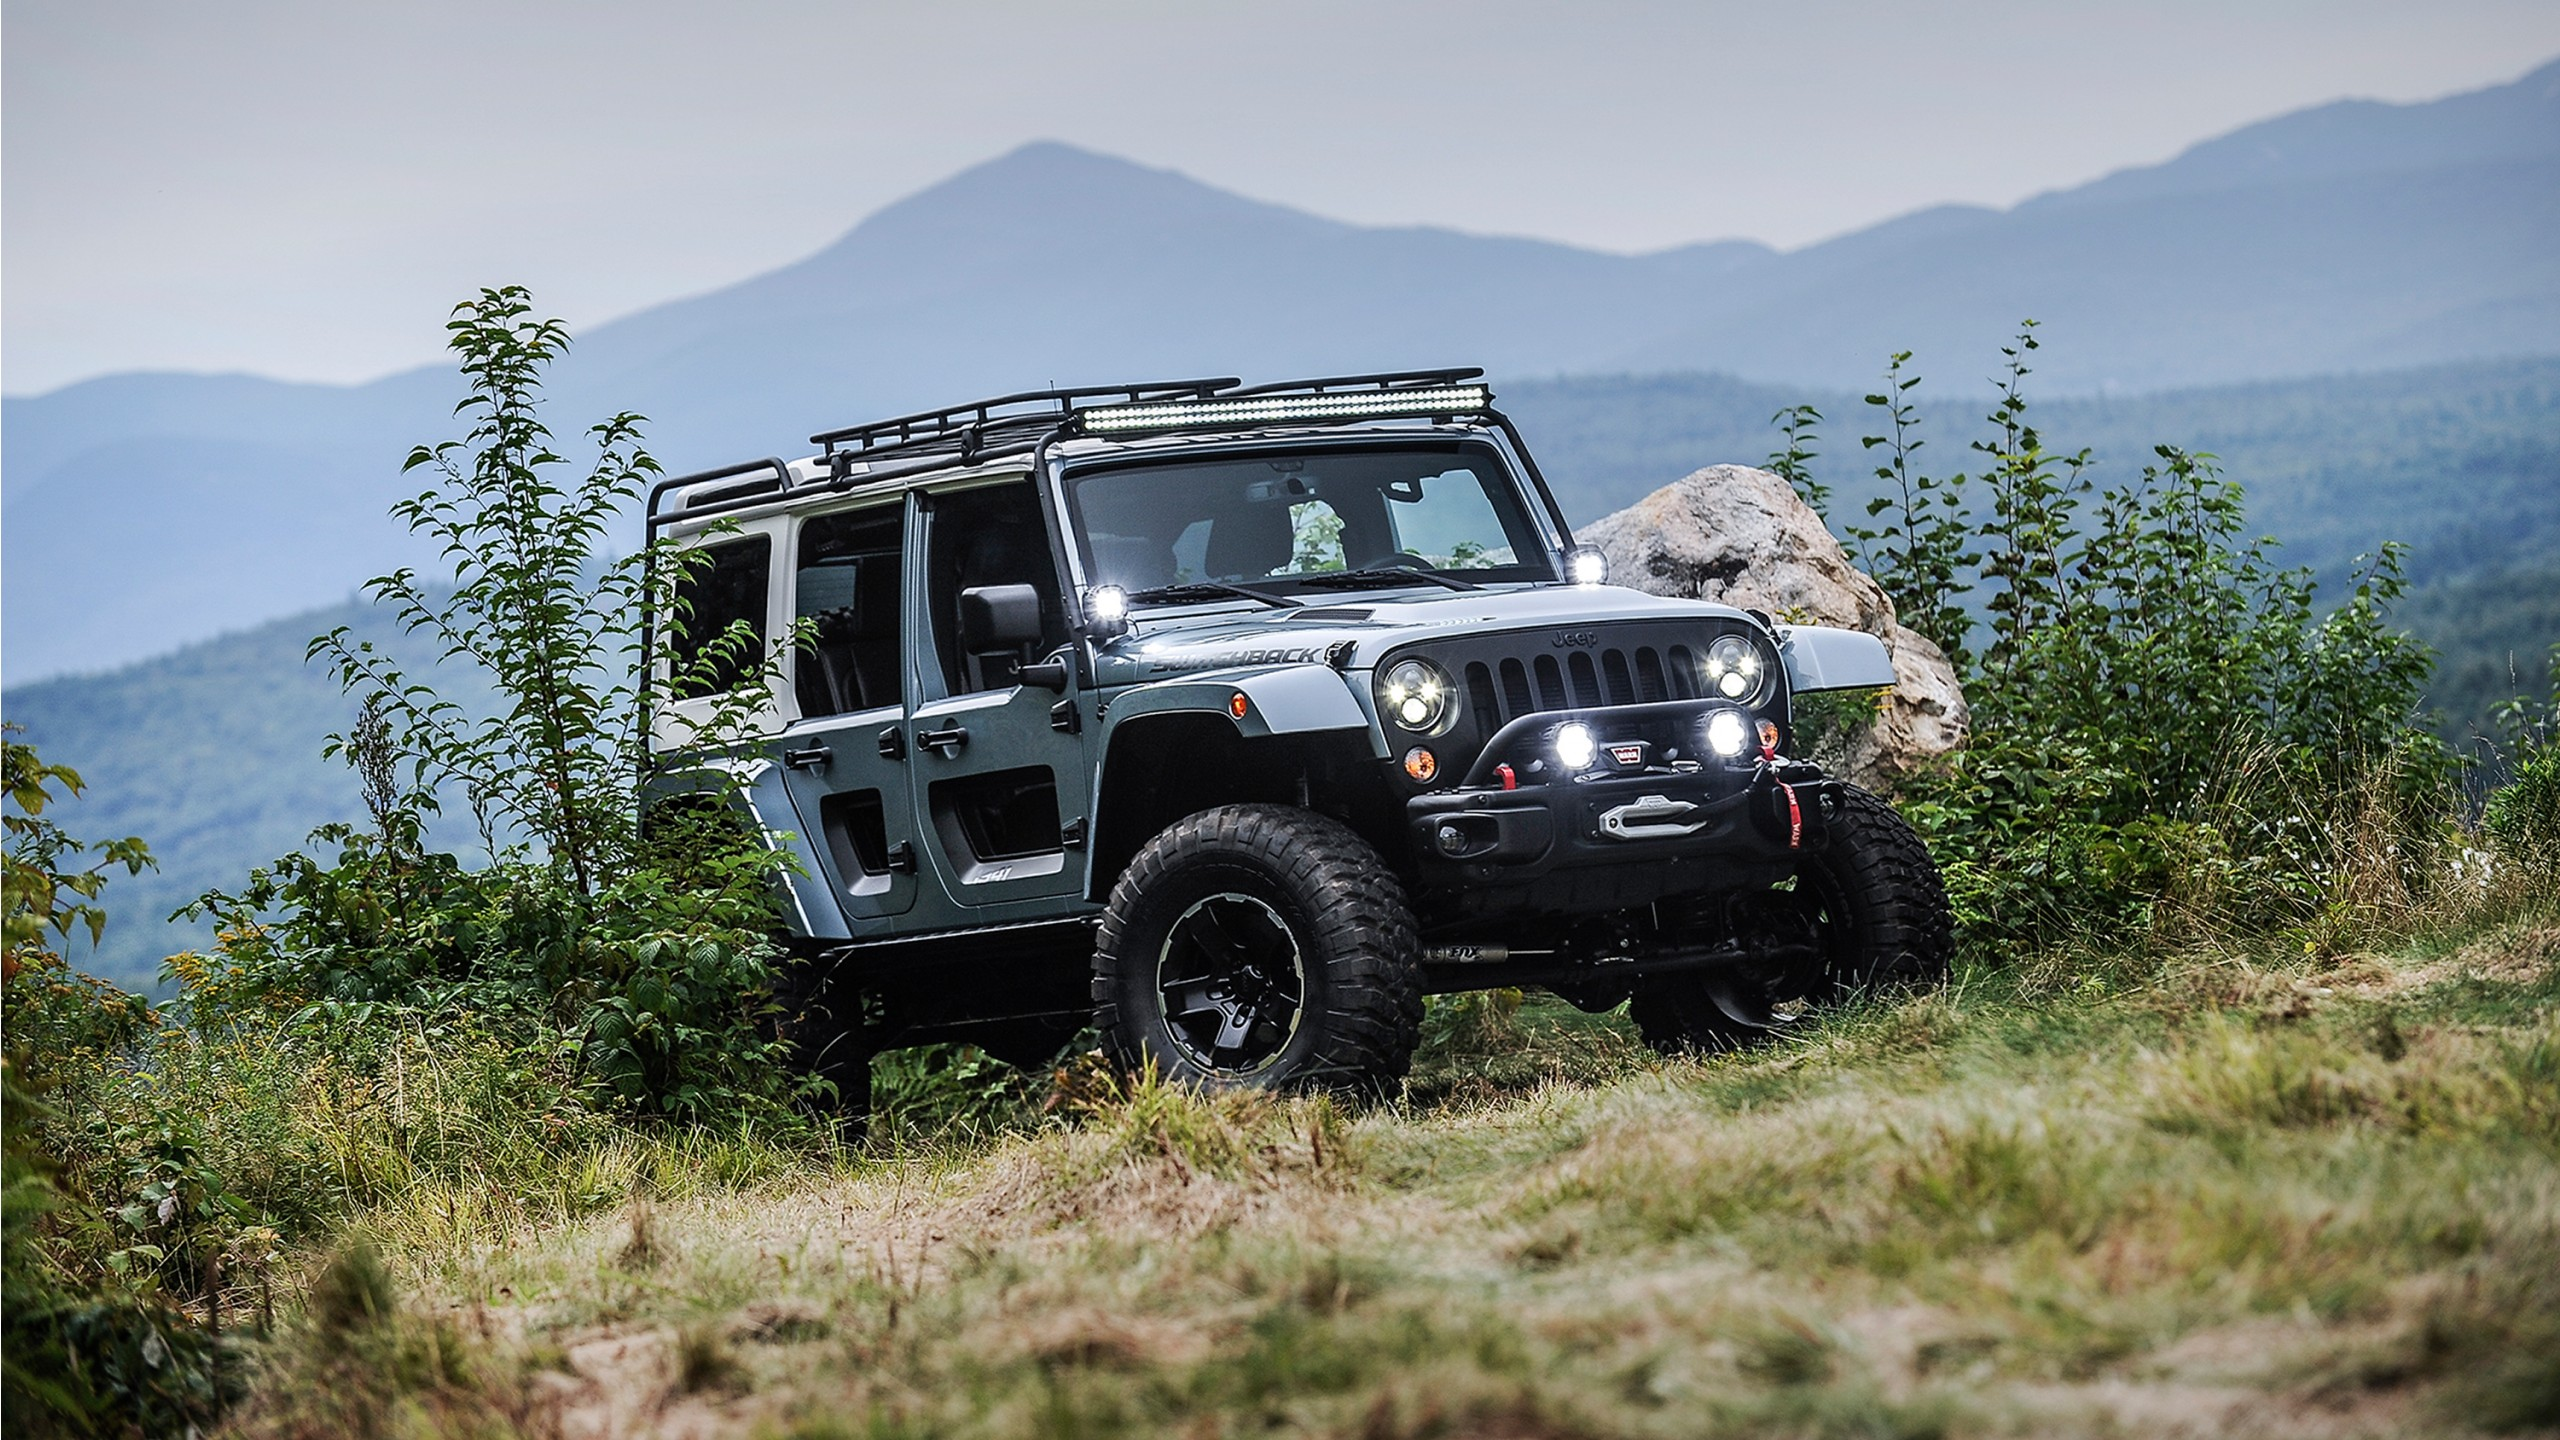 2014 Jeep Wrangler Rubicon >> 2017 Jeep Switchback Concept Wallpaper | HD Car Wallpapers ...